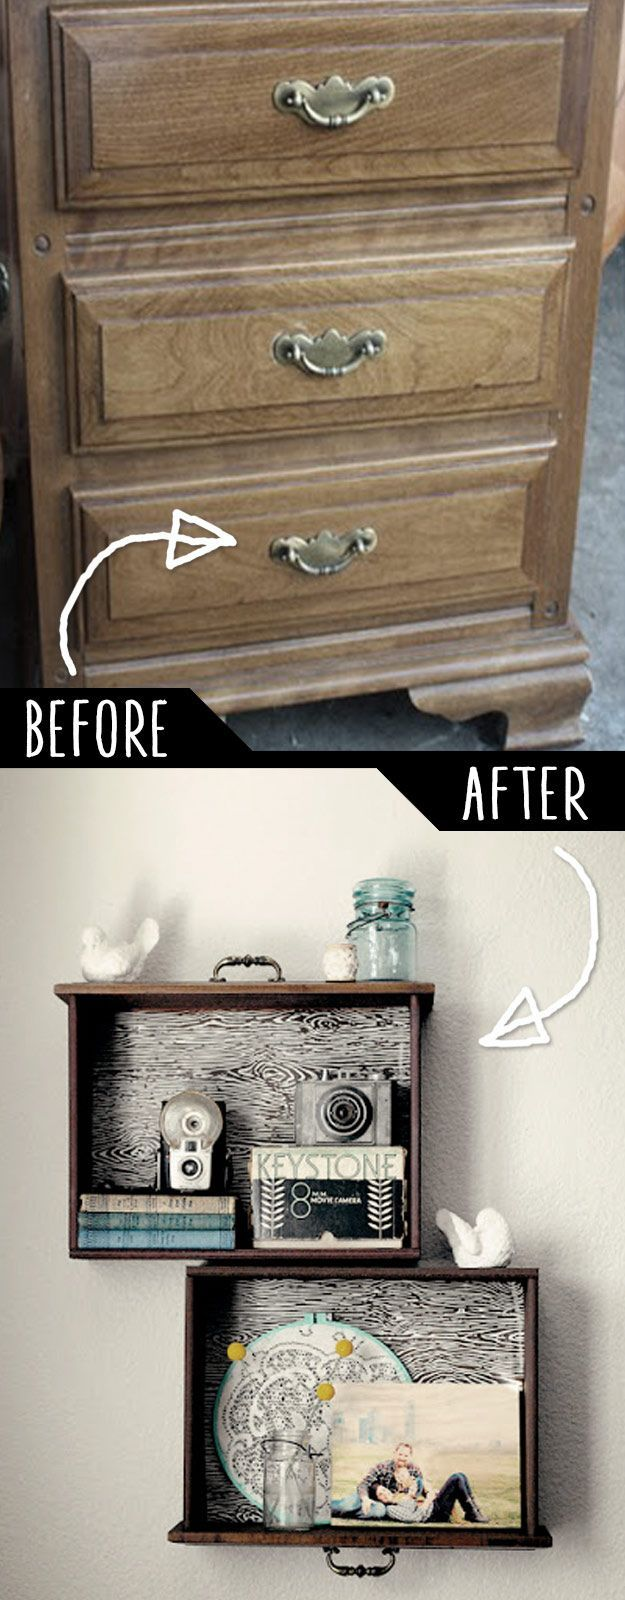 25 best ideas about diy bedroom decor on pinterest kids for Decorating bedroom ideas cheap